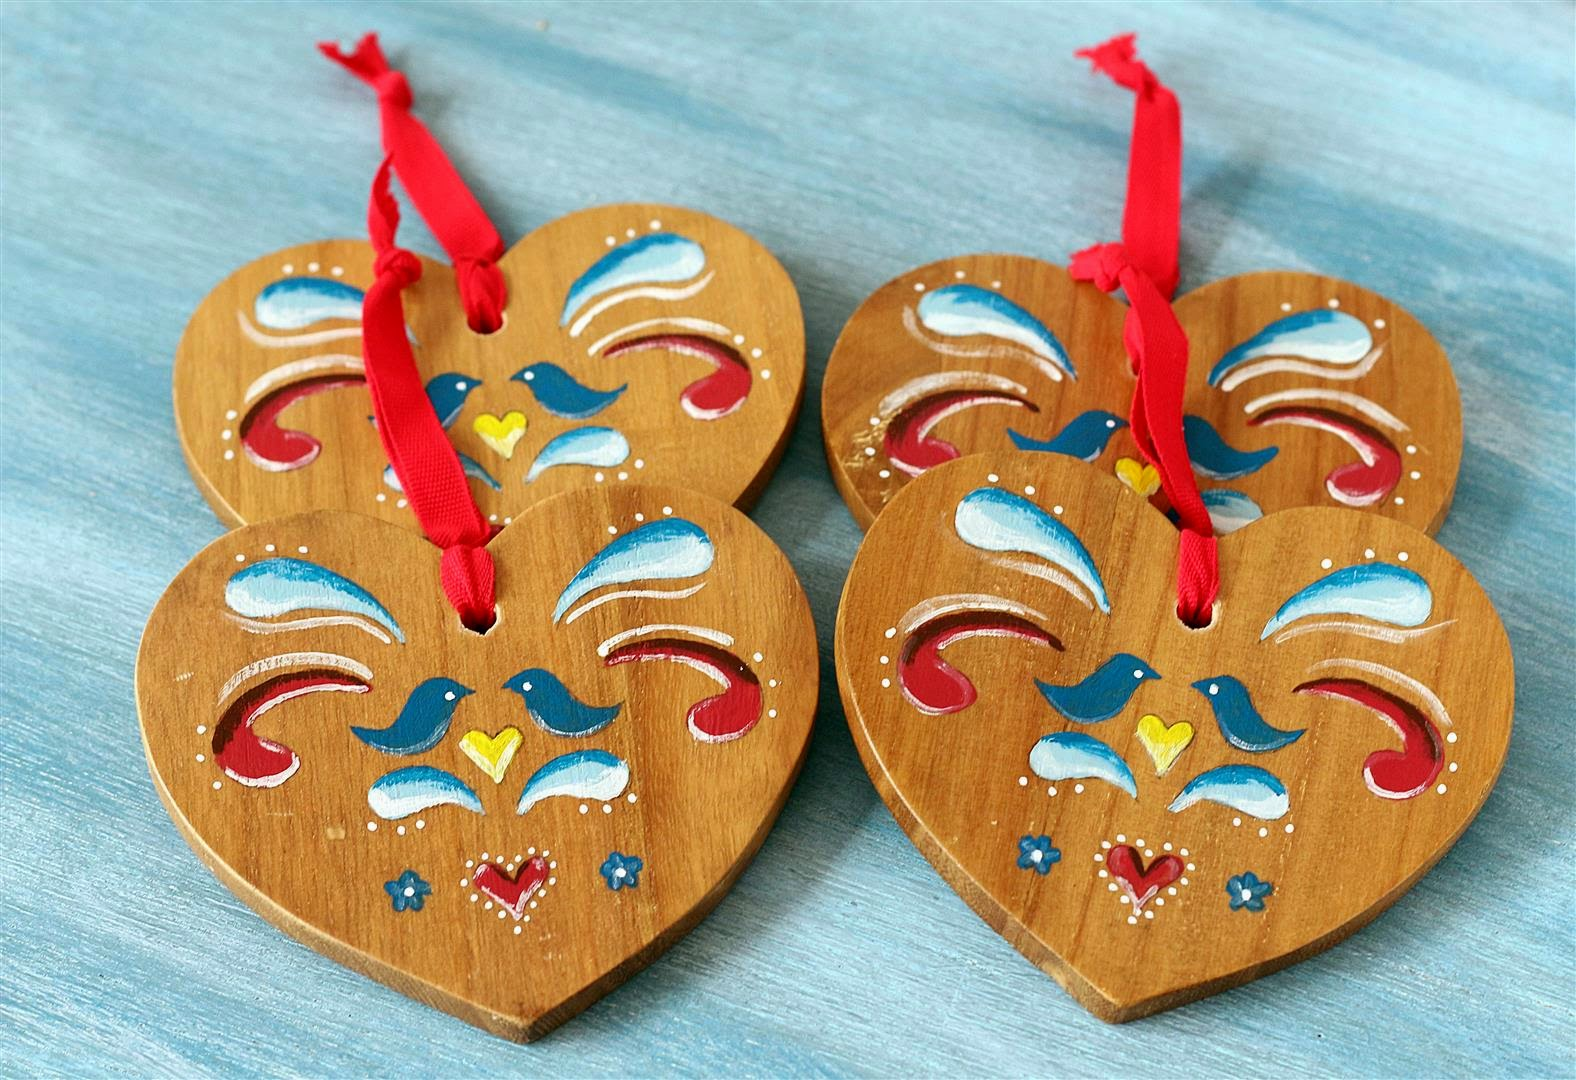 DIY painted lacquer wood heart coasters